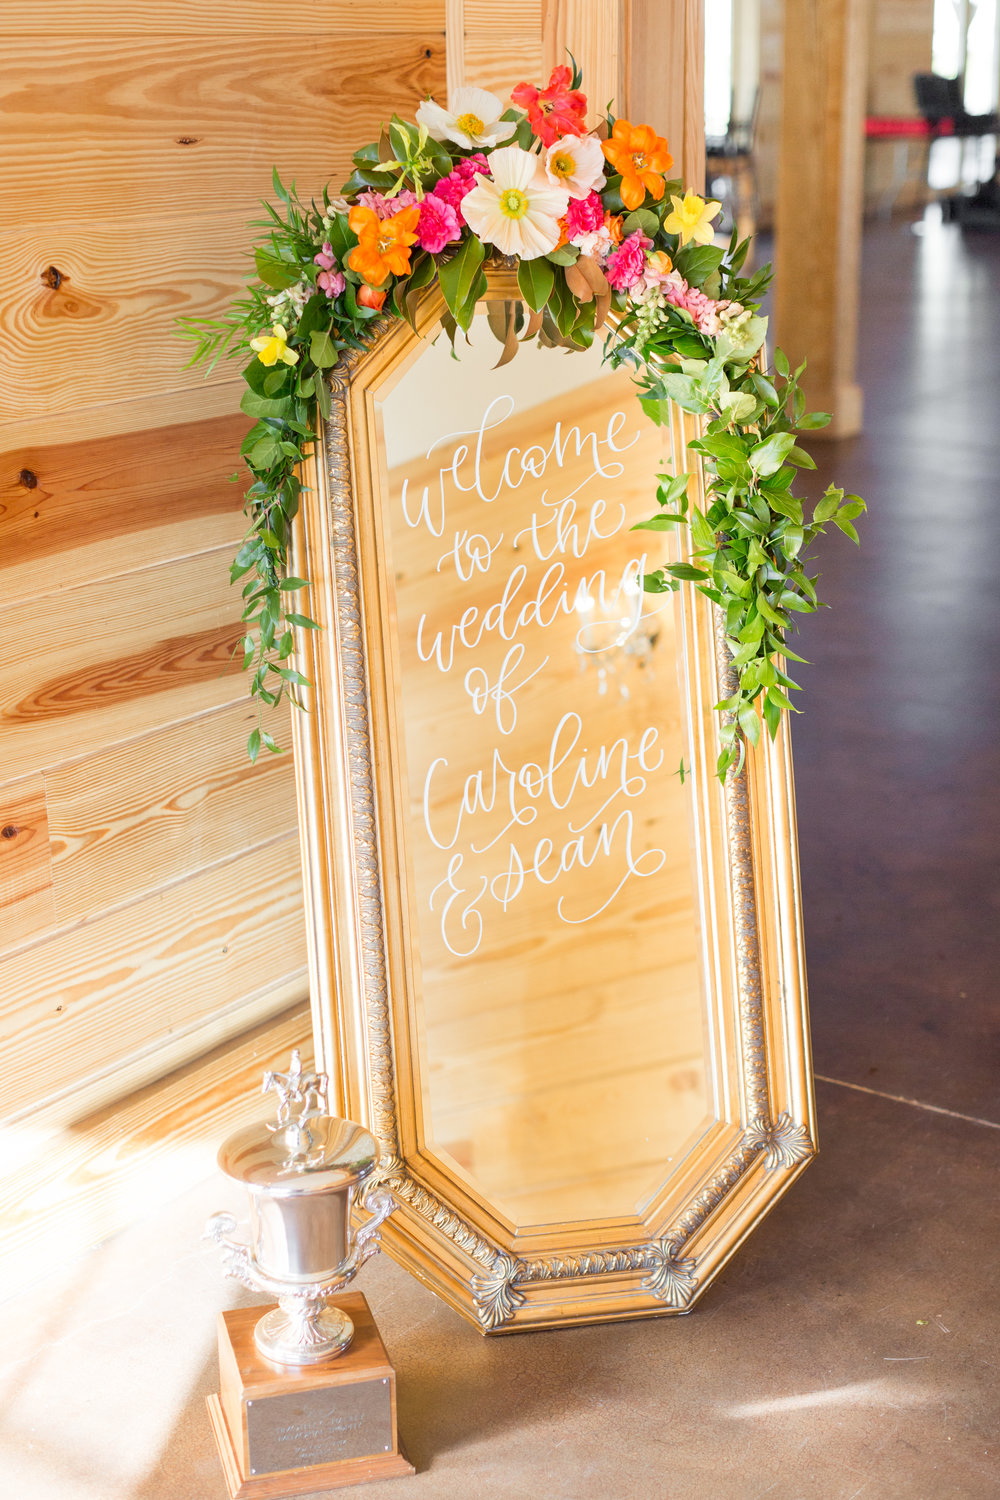 Welcome sign at wedding with flowers